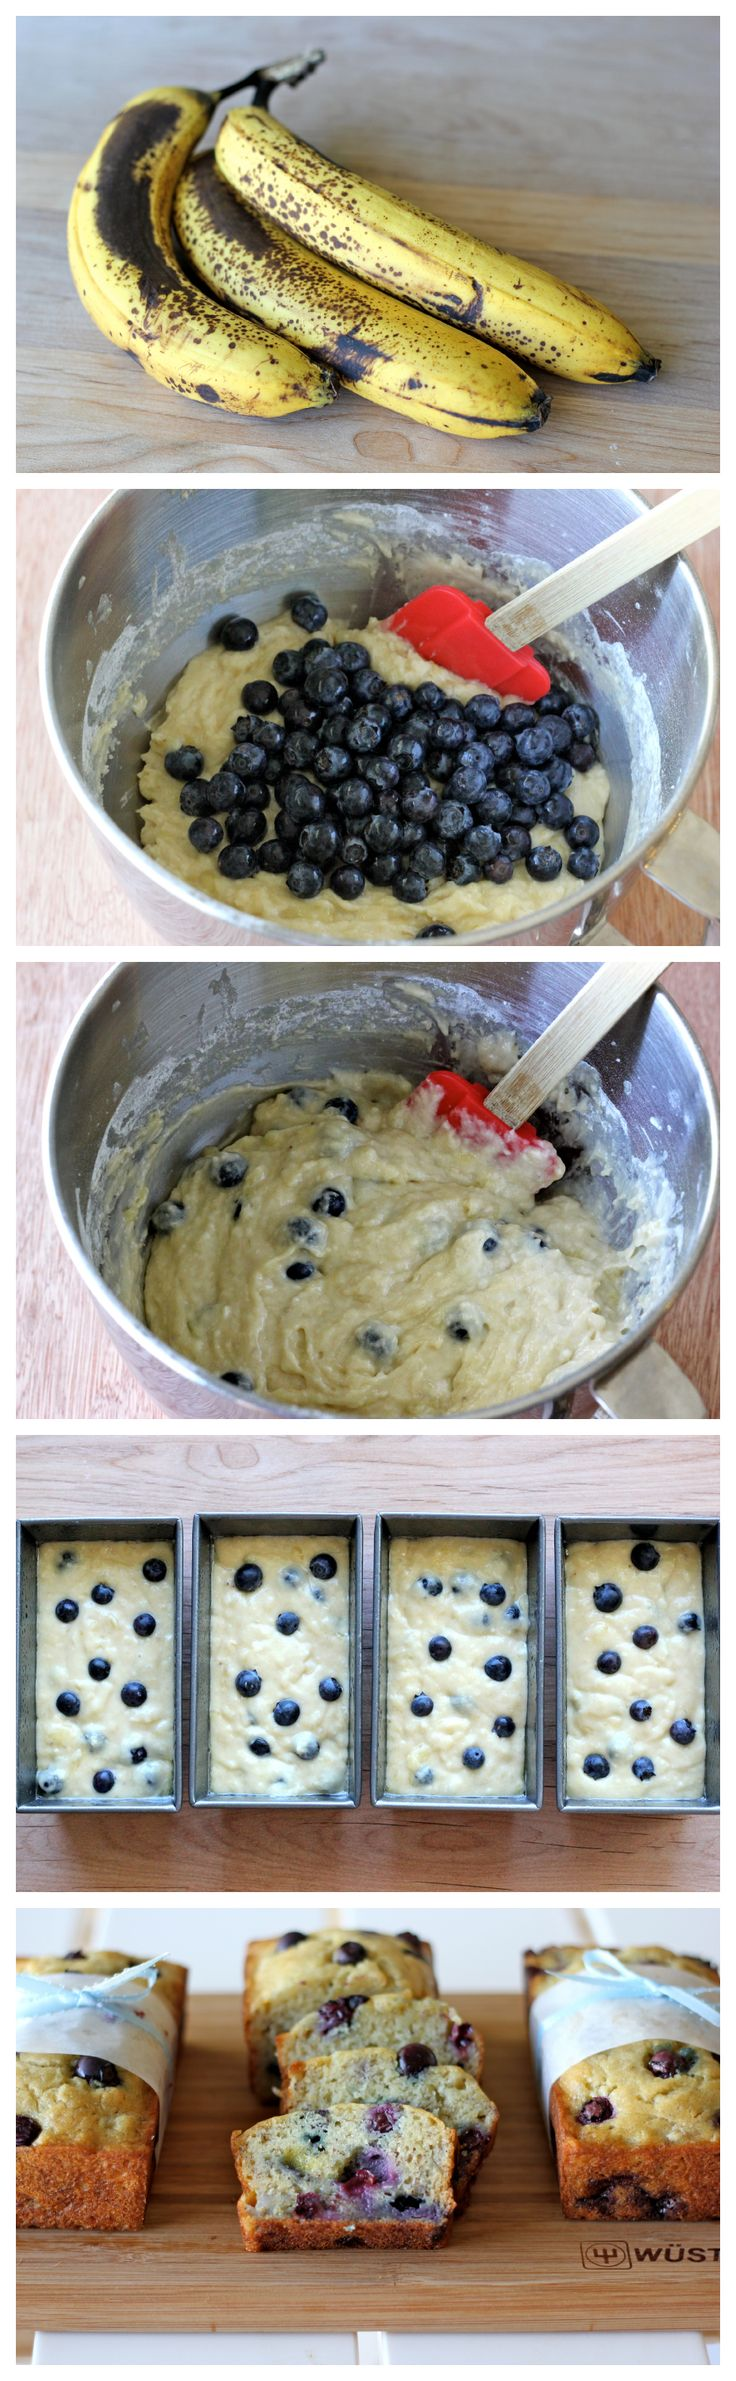 Buttermilk Banana Blueberry Bread - A great way to use up those spotty bananas!